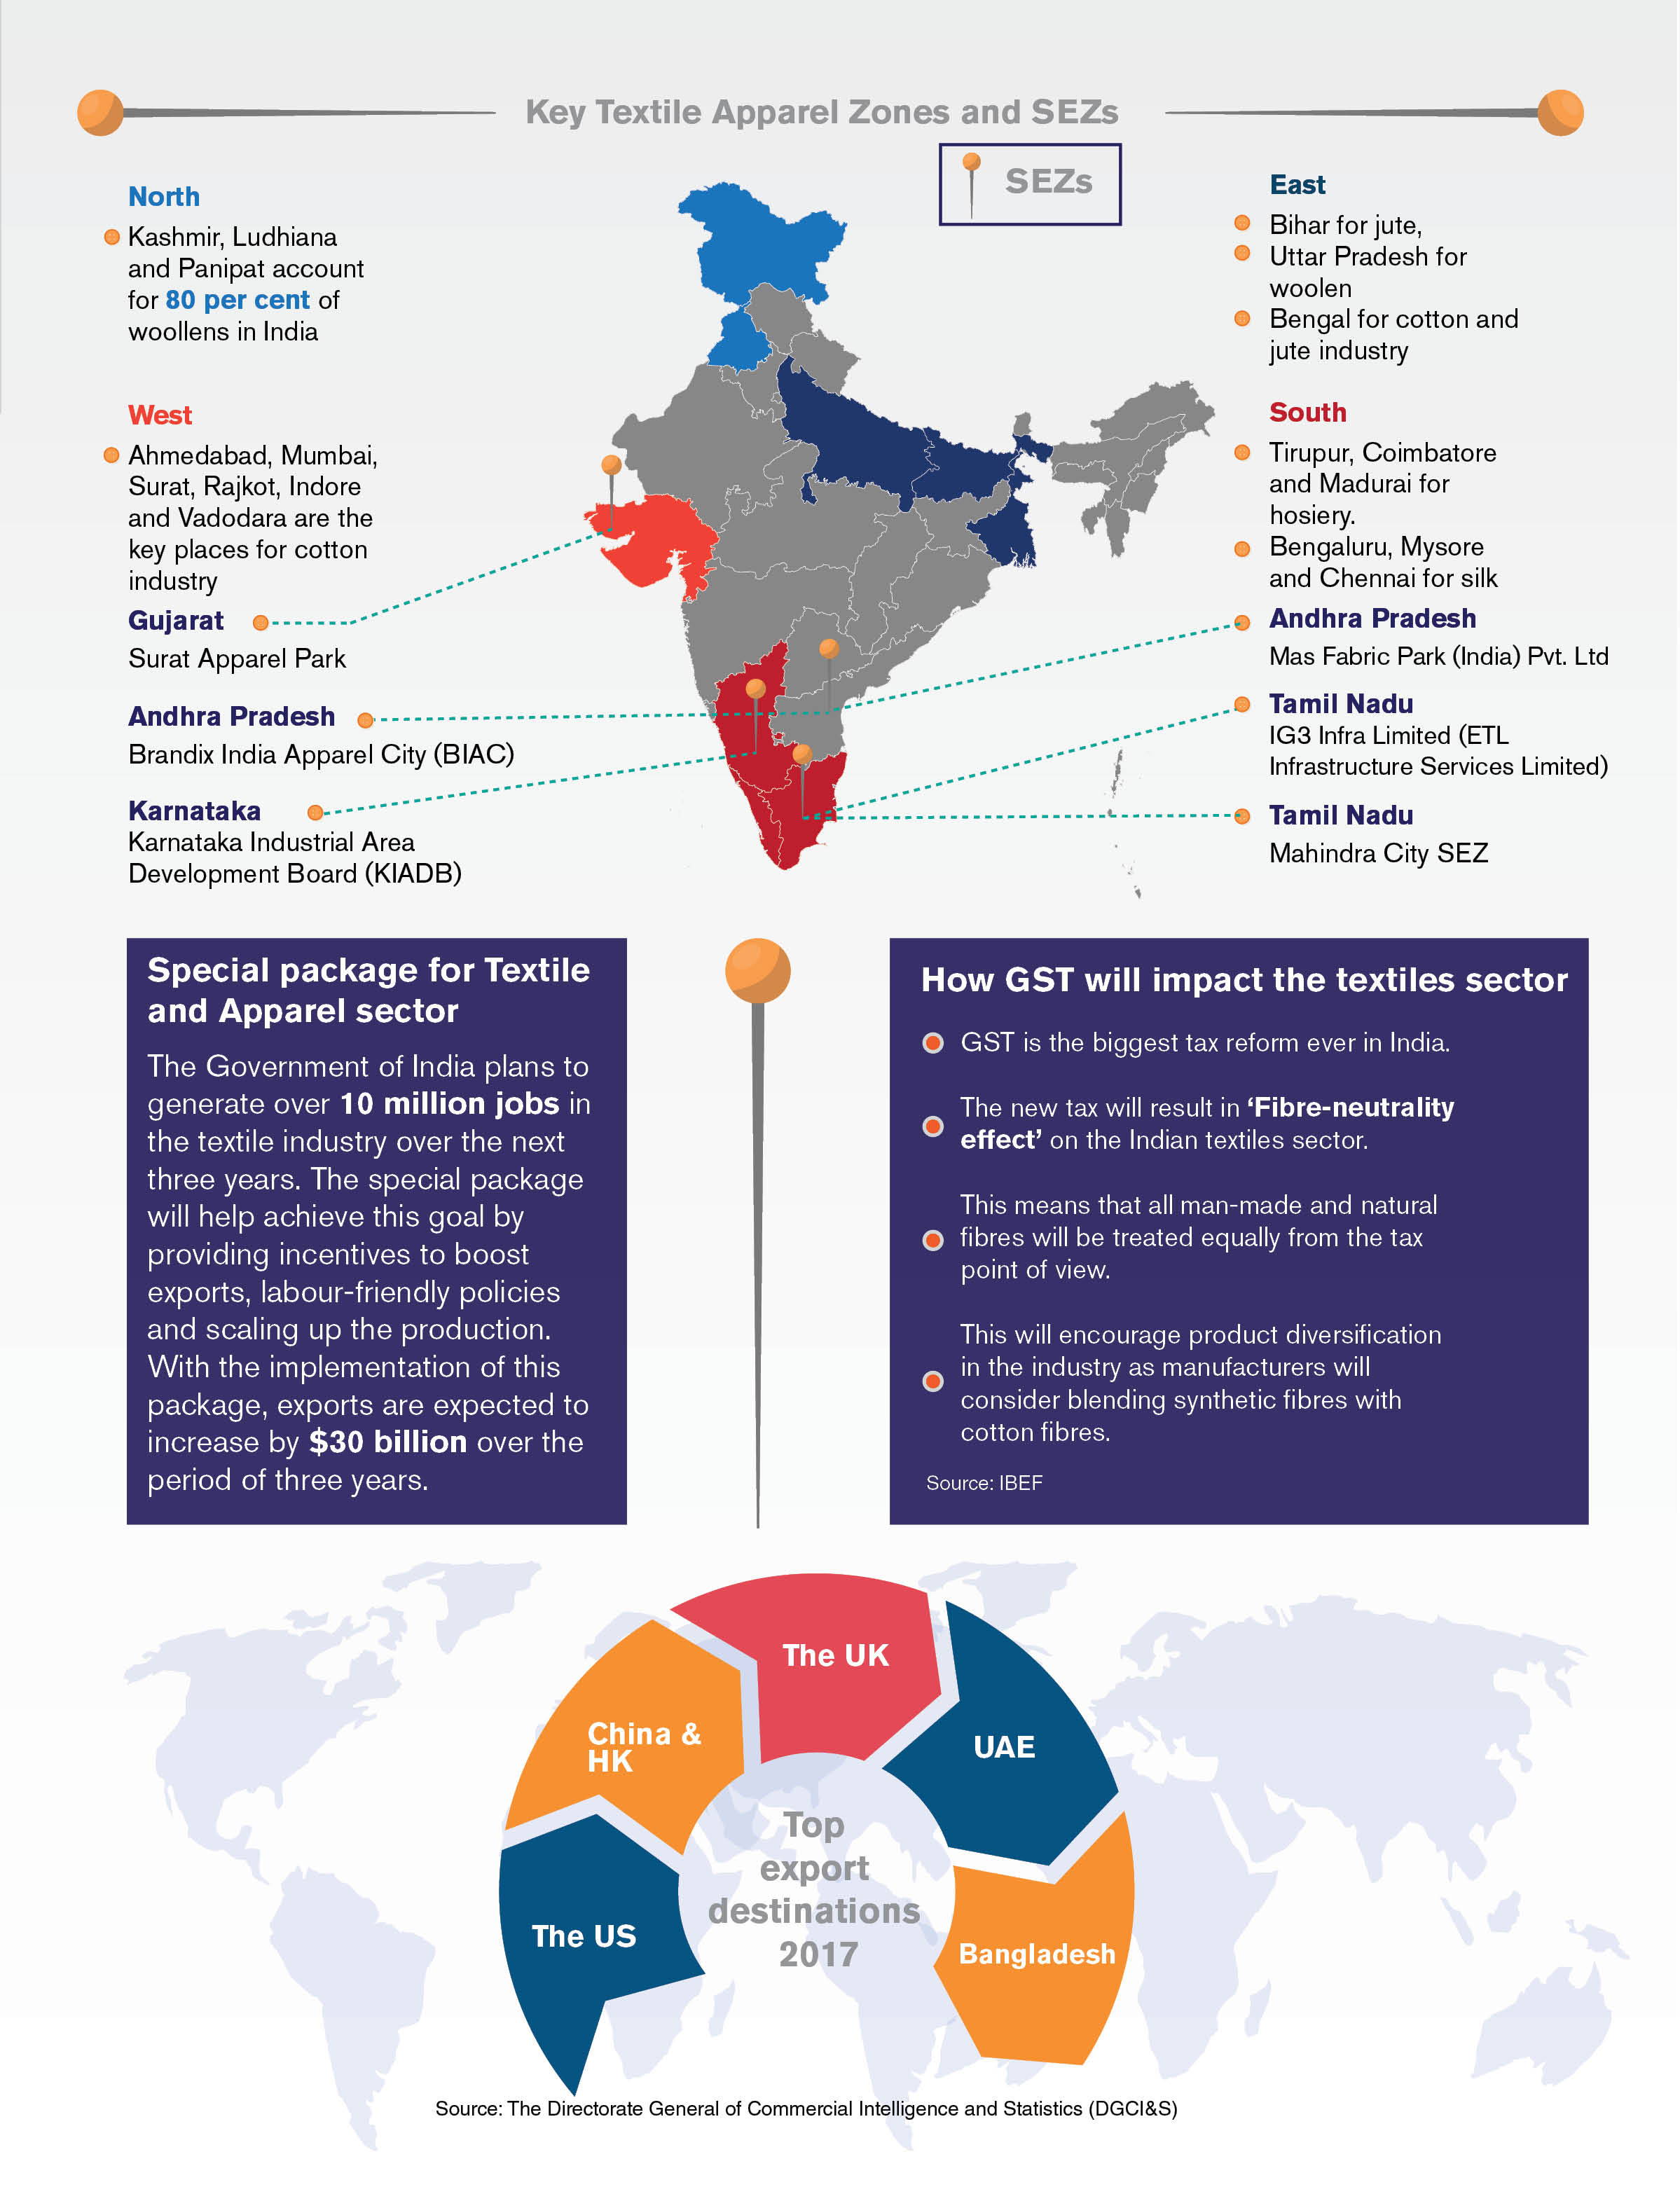 Key Textile Apparel Zones and SEZs